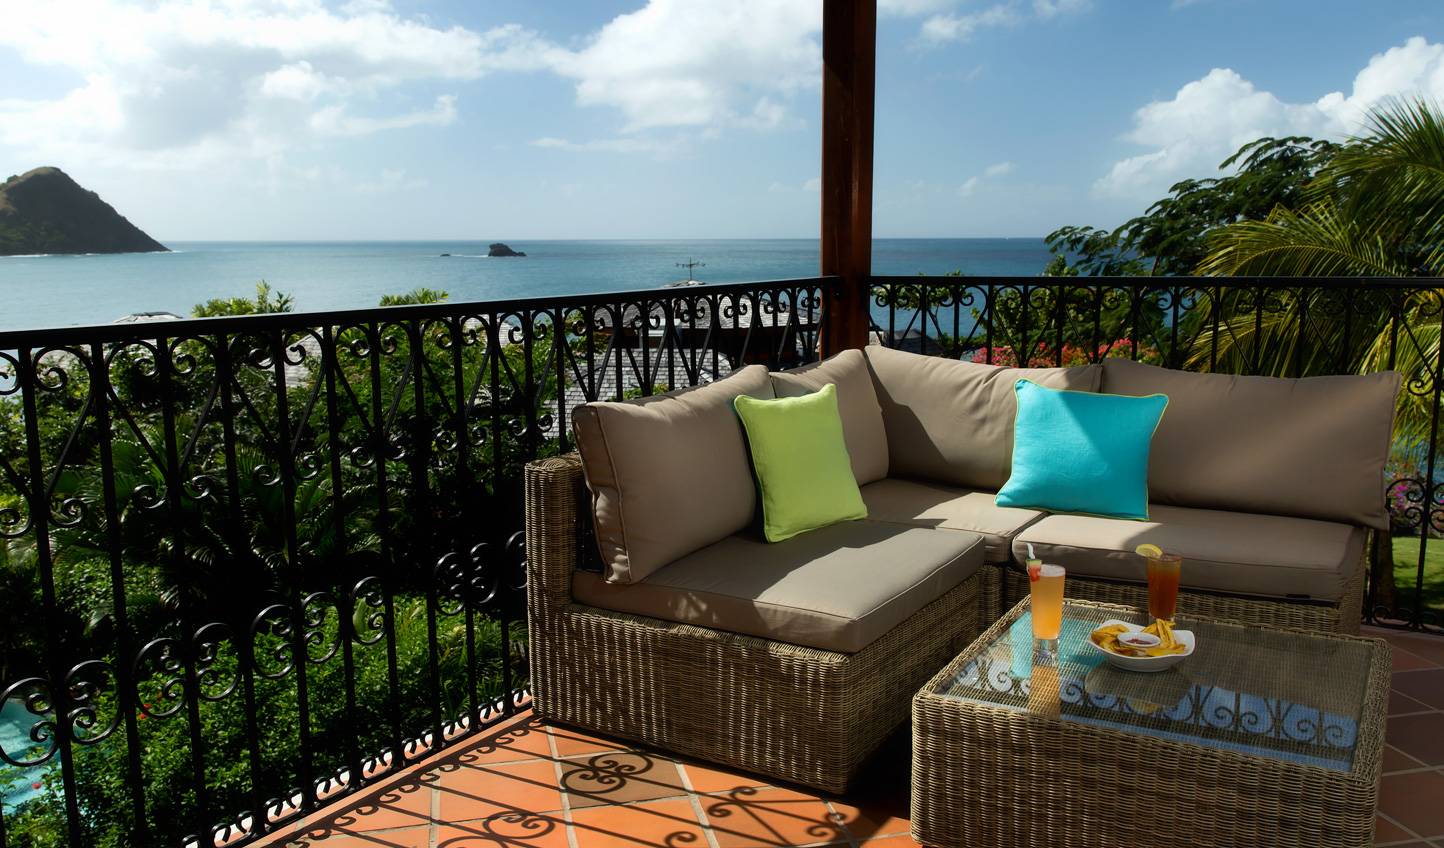 Gaze out over the horizon on your private balcony